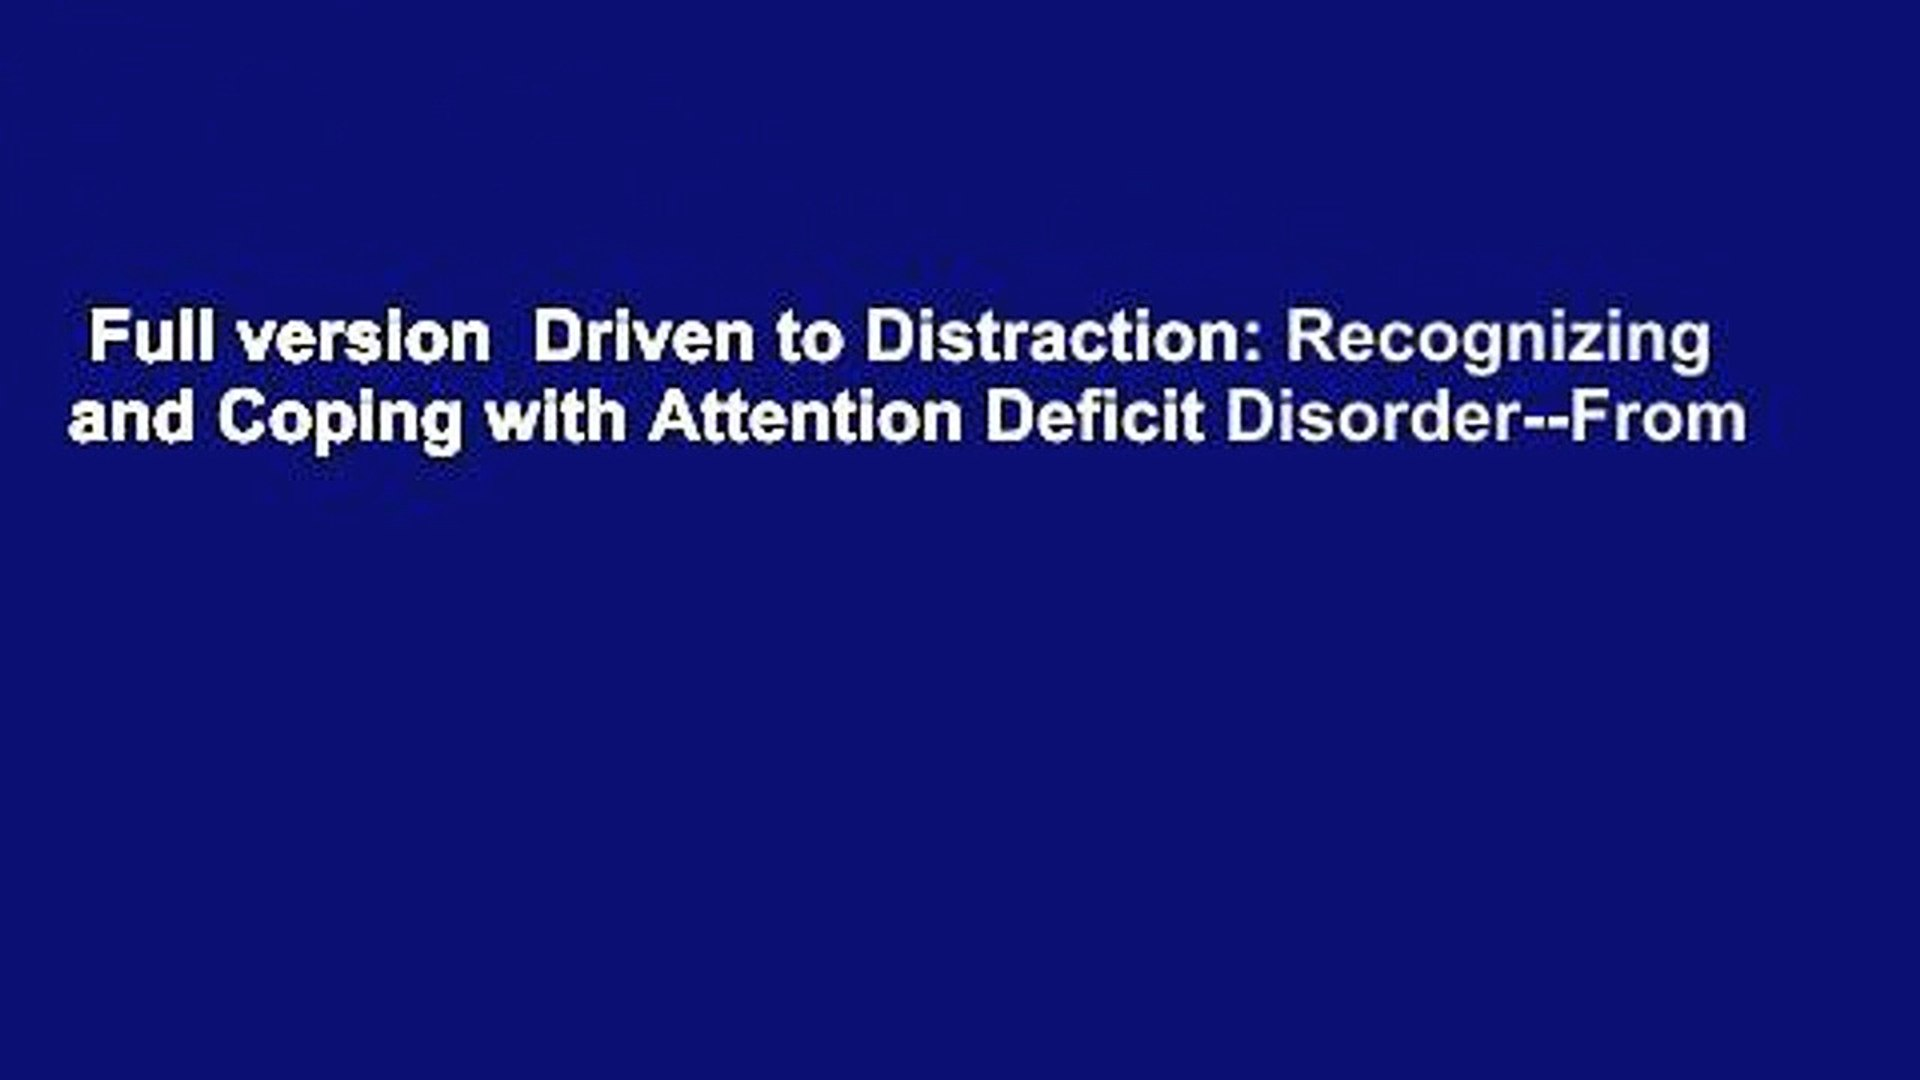 a6ca695041cf3 Full version Driven to Distraction: Recognizing and Coping with ...